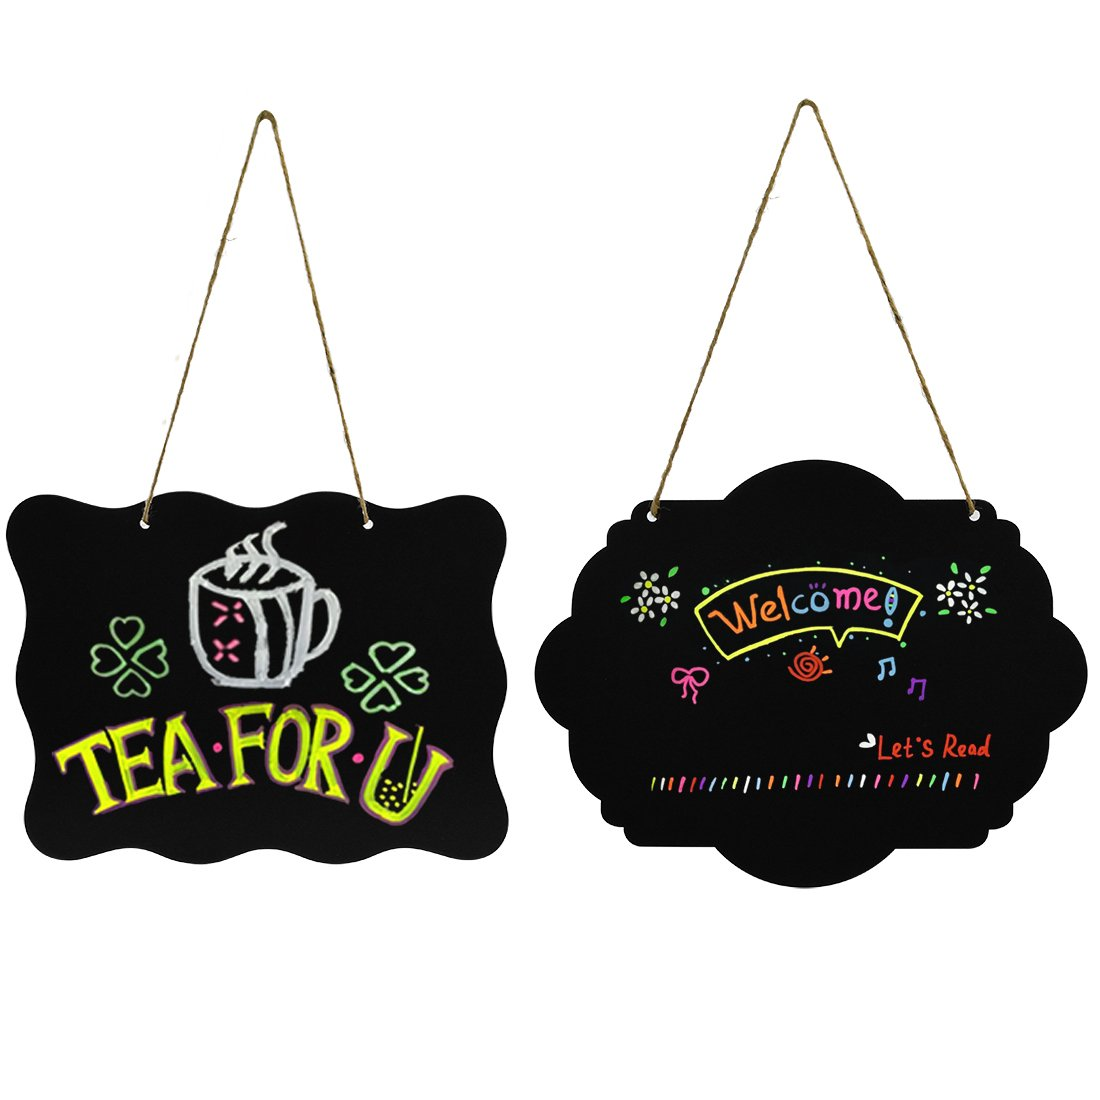 2 PCS Wooden Double Sided Hanging Chalkboard Signs, Nydotd Erasable Blackboard Creative Message Board & Jute Rope for Crafts/Wedding Party Christmas Decor(10''x7.8'')